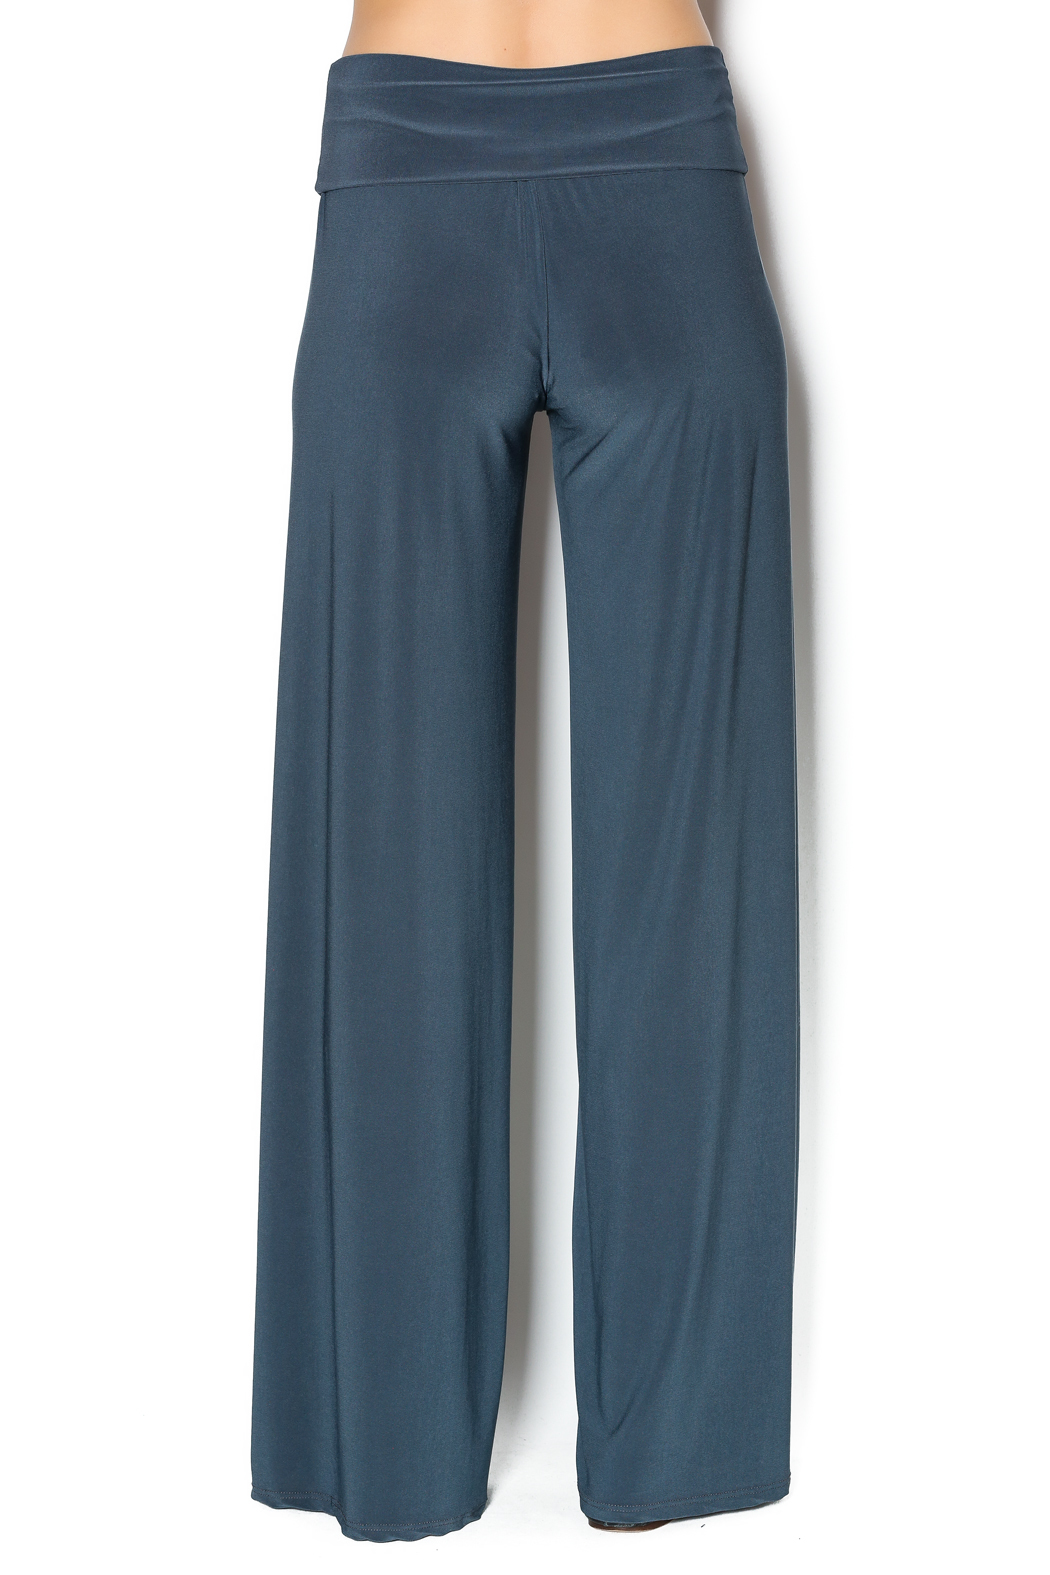 Everywhere you look, palazzo pants are making a comeback. You see them on the street, at a party, at the beach, in the office and even at weddings. Hugely popular in the 60s and 70s, it's easy to see why everyone loves them now.